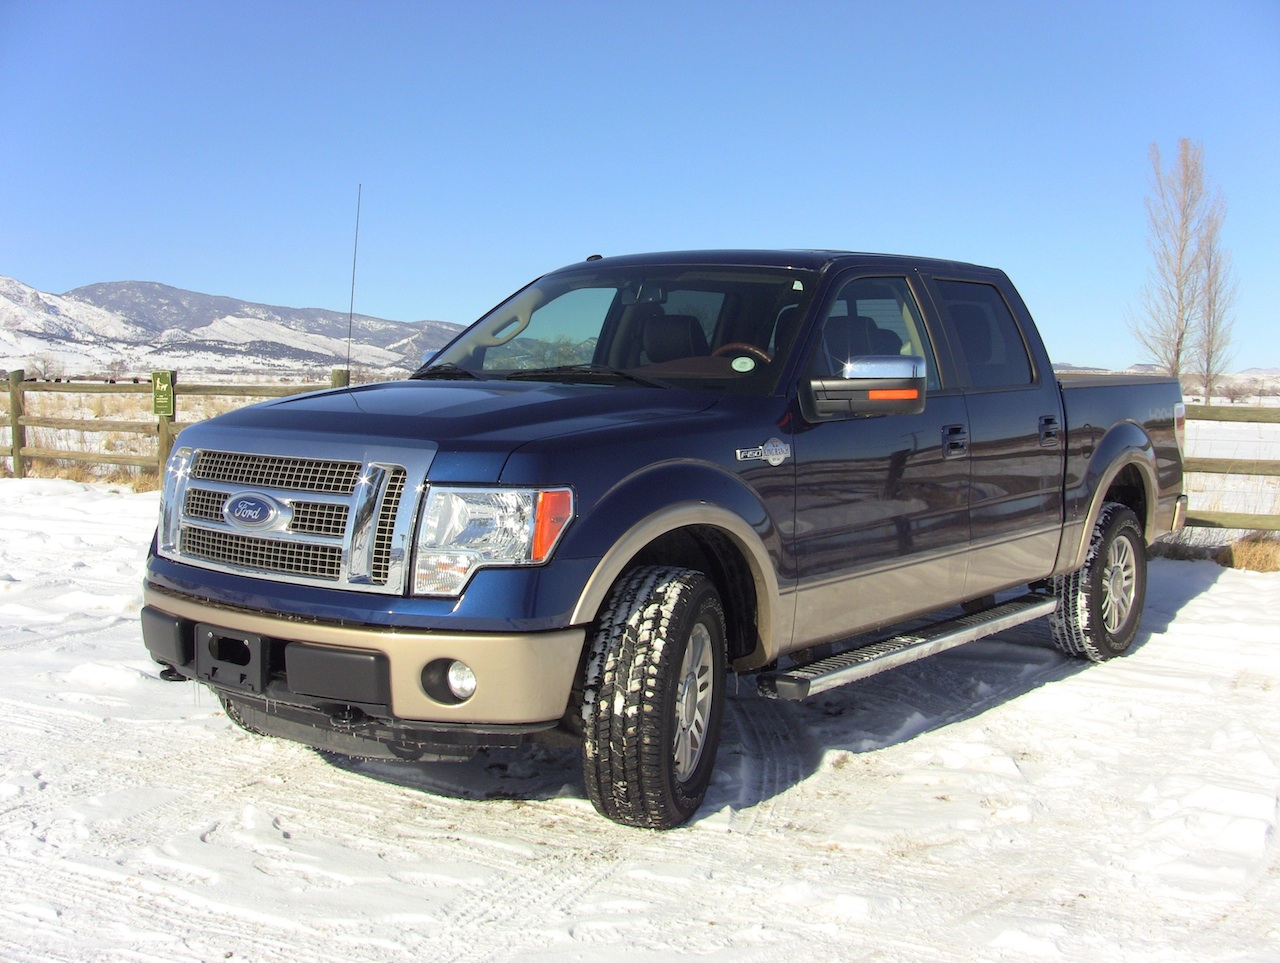 2011 ford f 150 mashup review ecoboost v6 twin turbo vs 5 0l v8. Black Bedroom Furniture Sets. Home Design Ideas